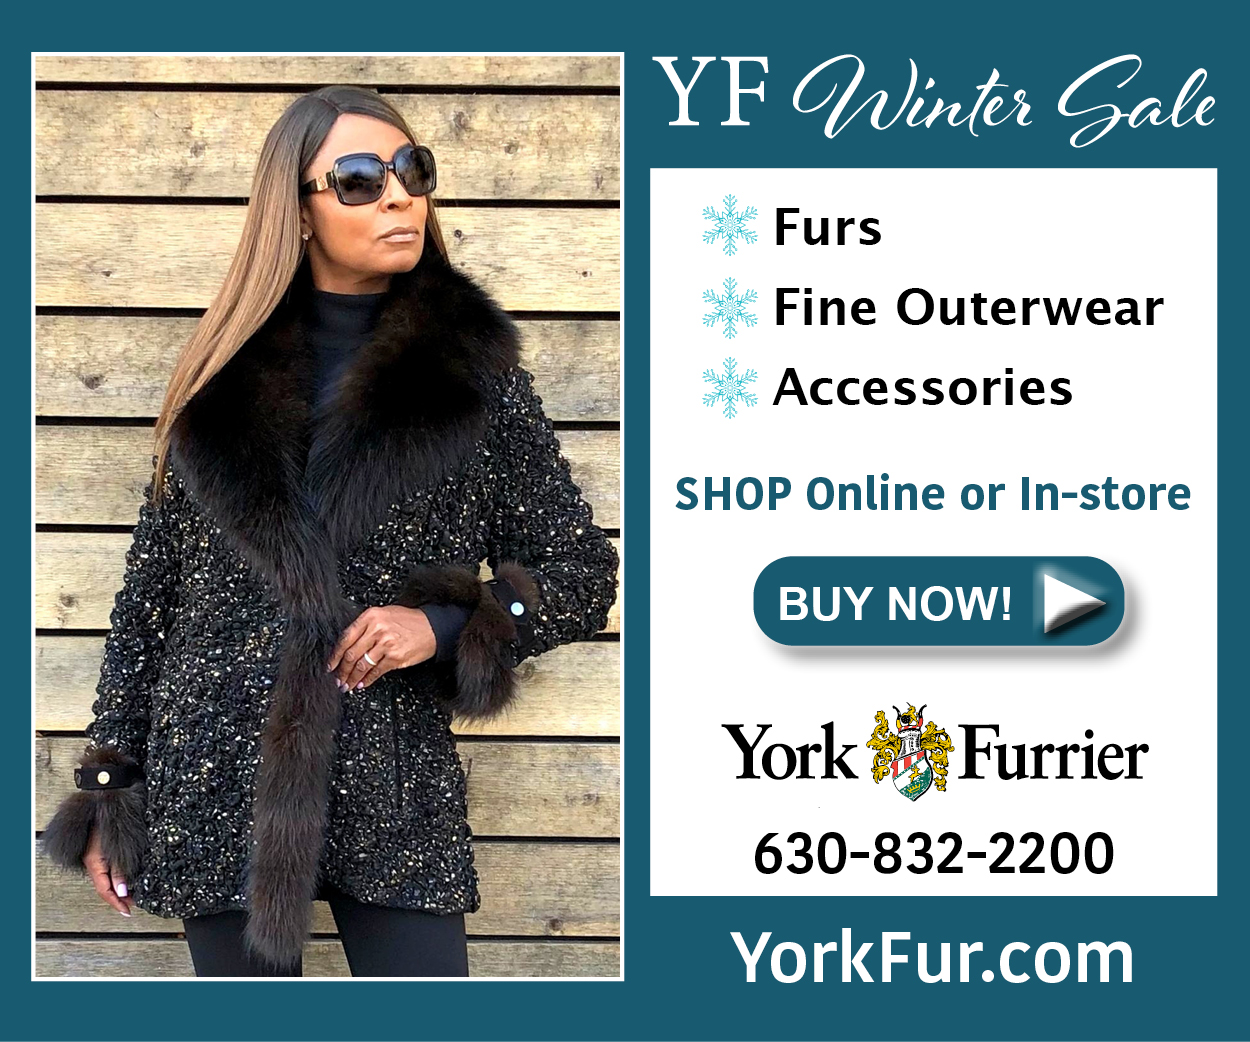 York-Furrier